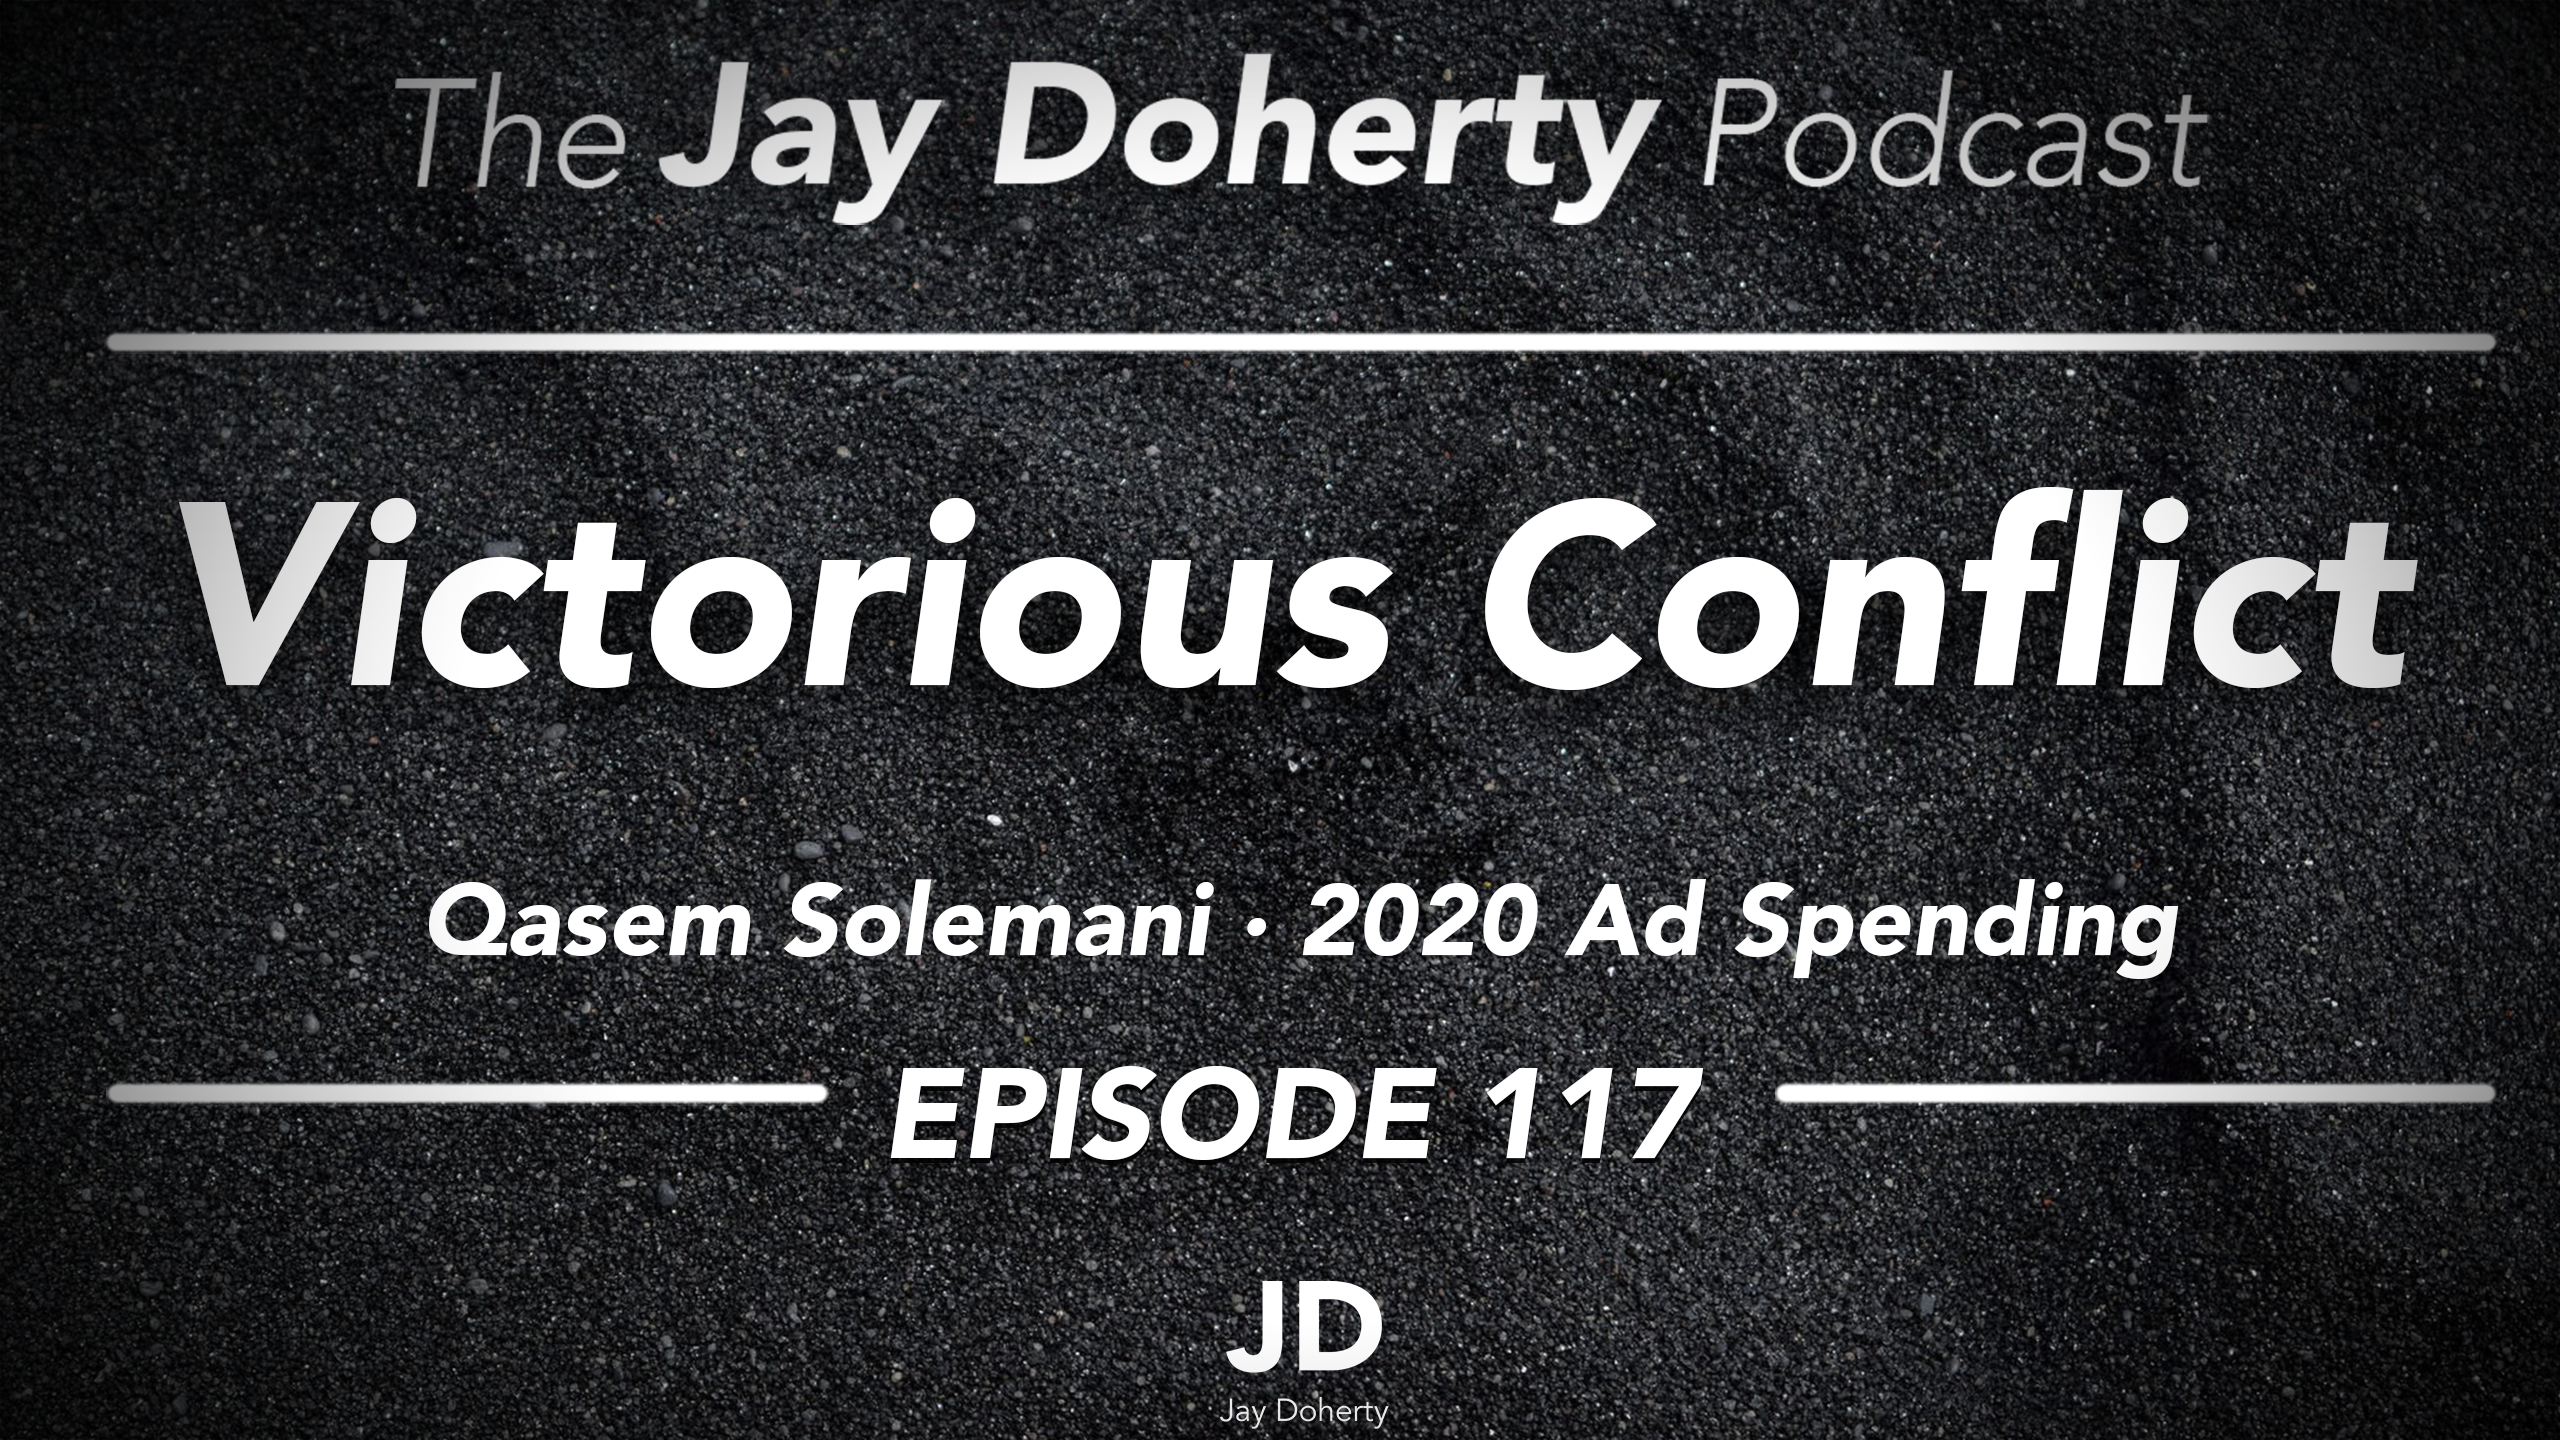 117 – Victorious Conflict | Qasem Soleimani and 2020 Ad Spending